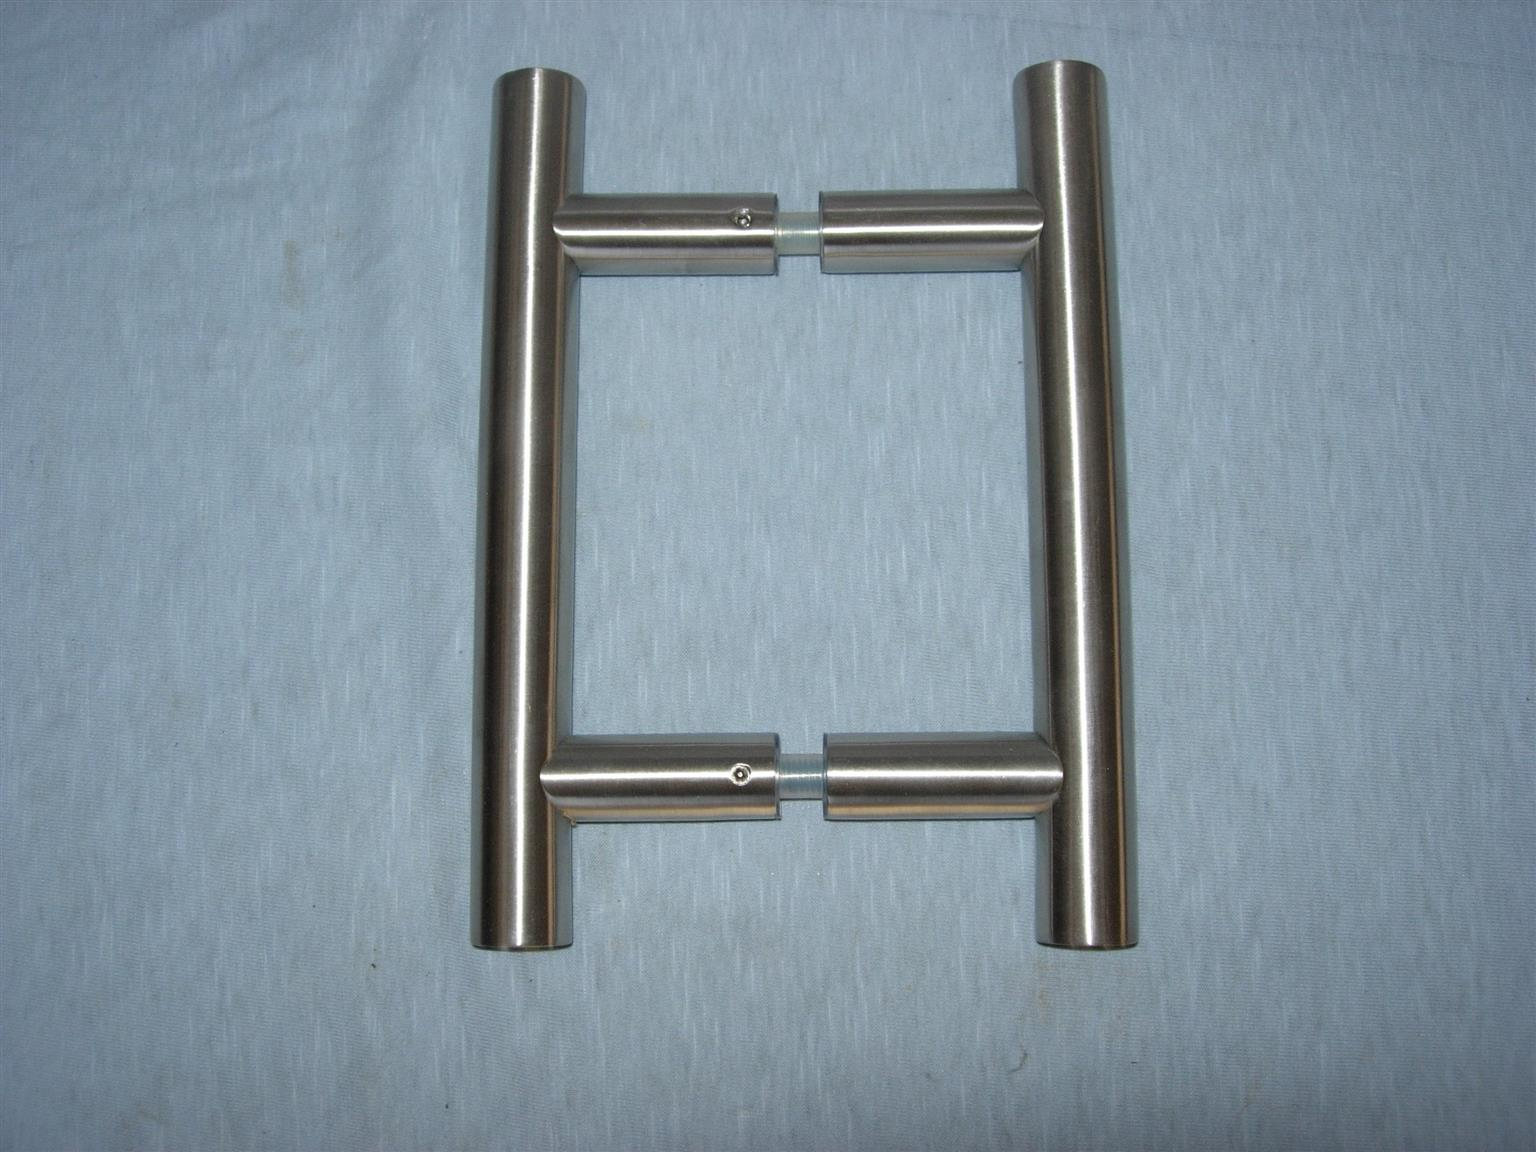 Door Handles - New